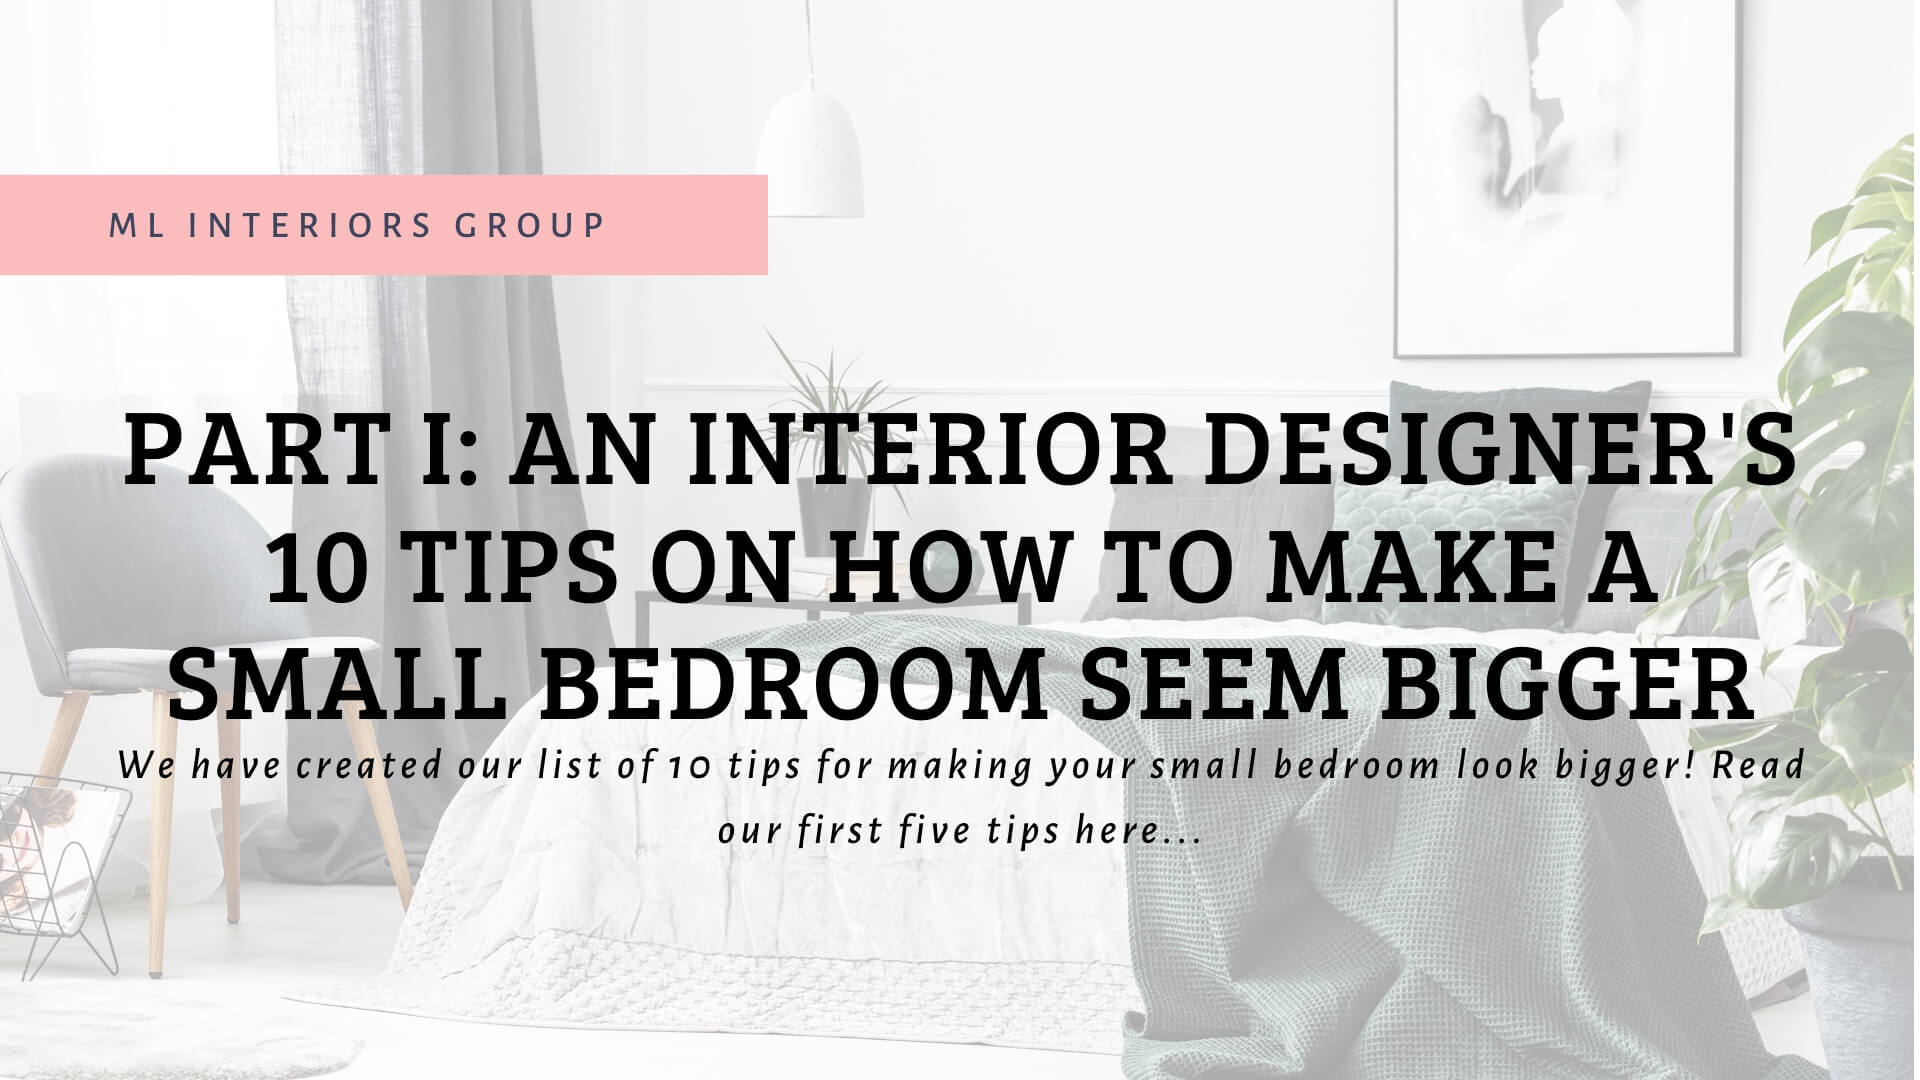 Part I: A Designer's 10 Tips on How to Make a Small Bedroom Seem Bigger